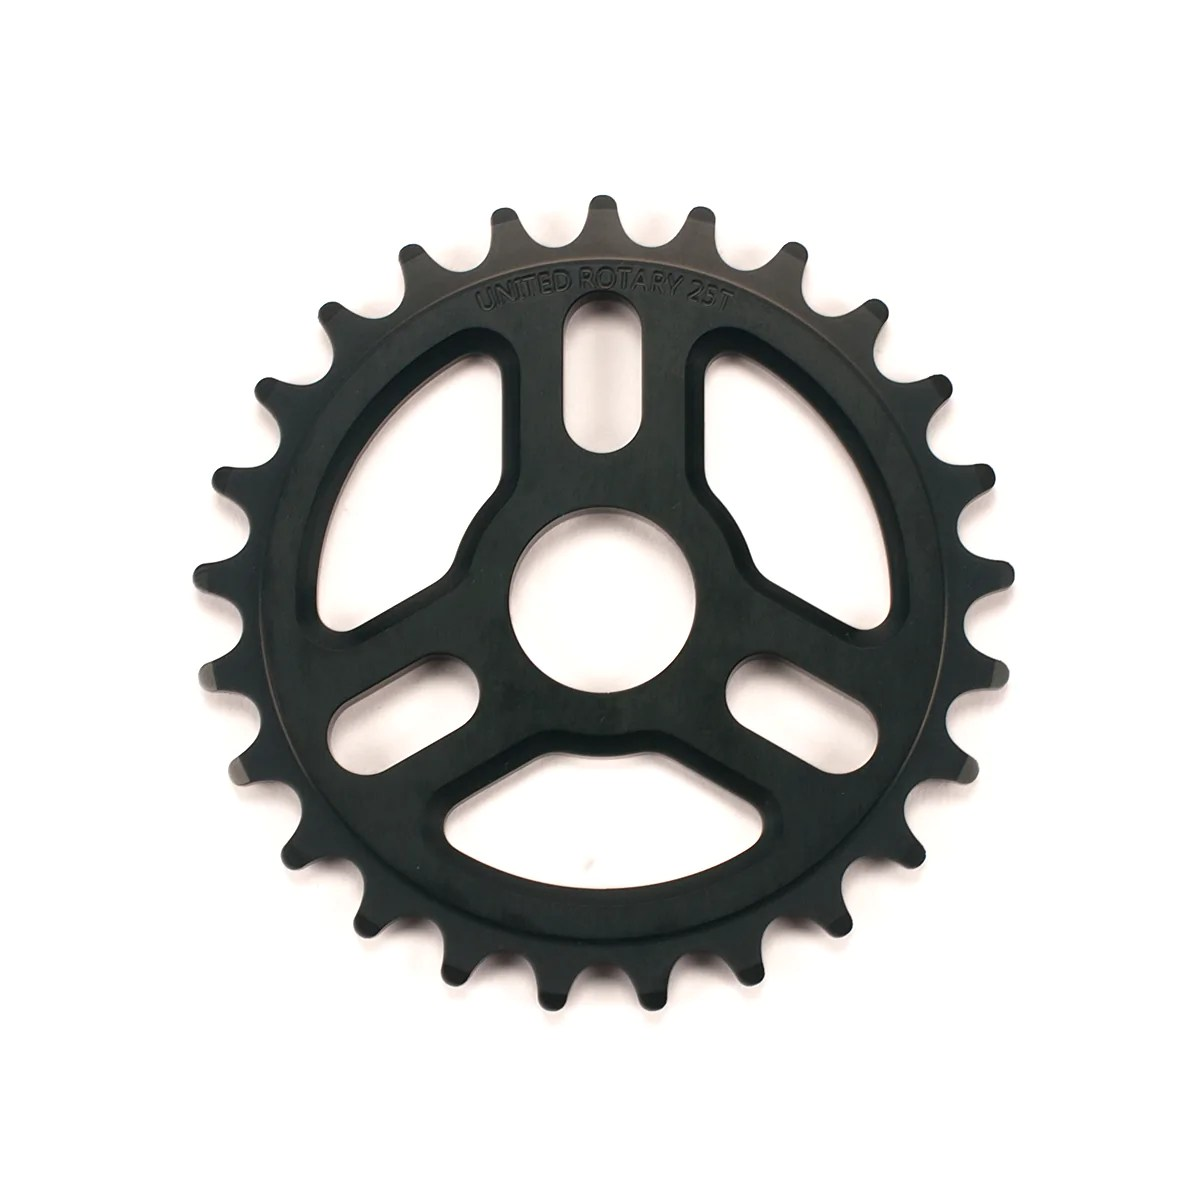 Bmx Parts Rotary Sprocket Black